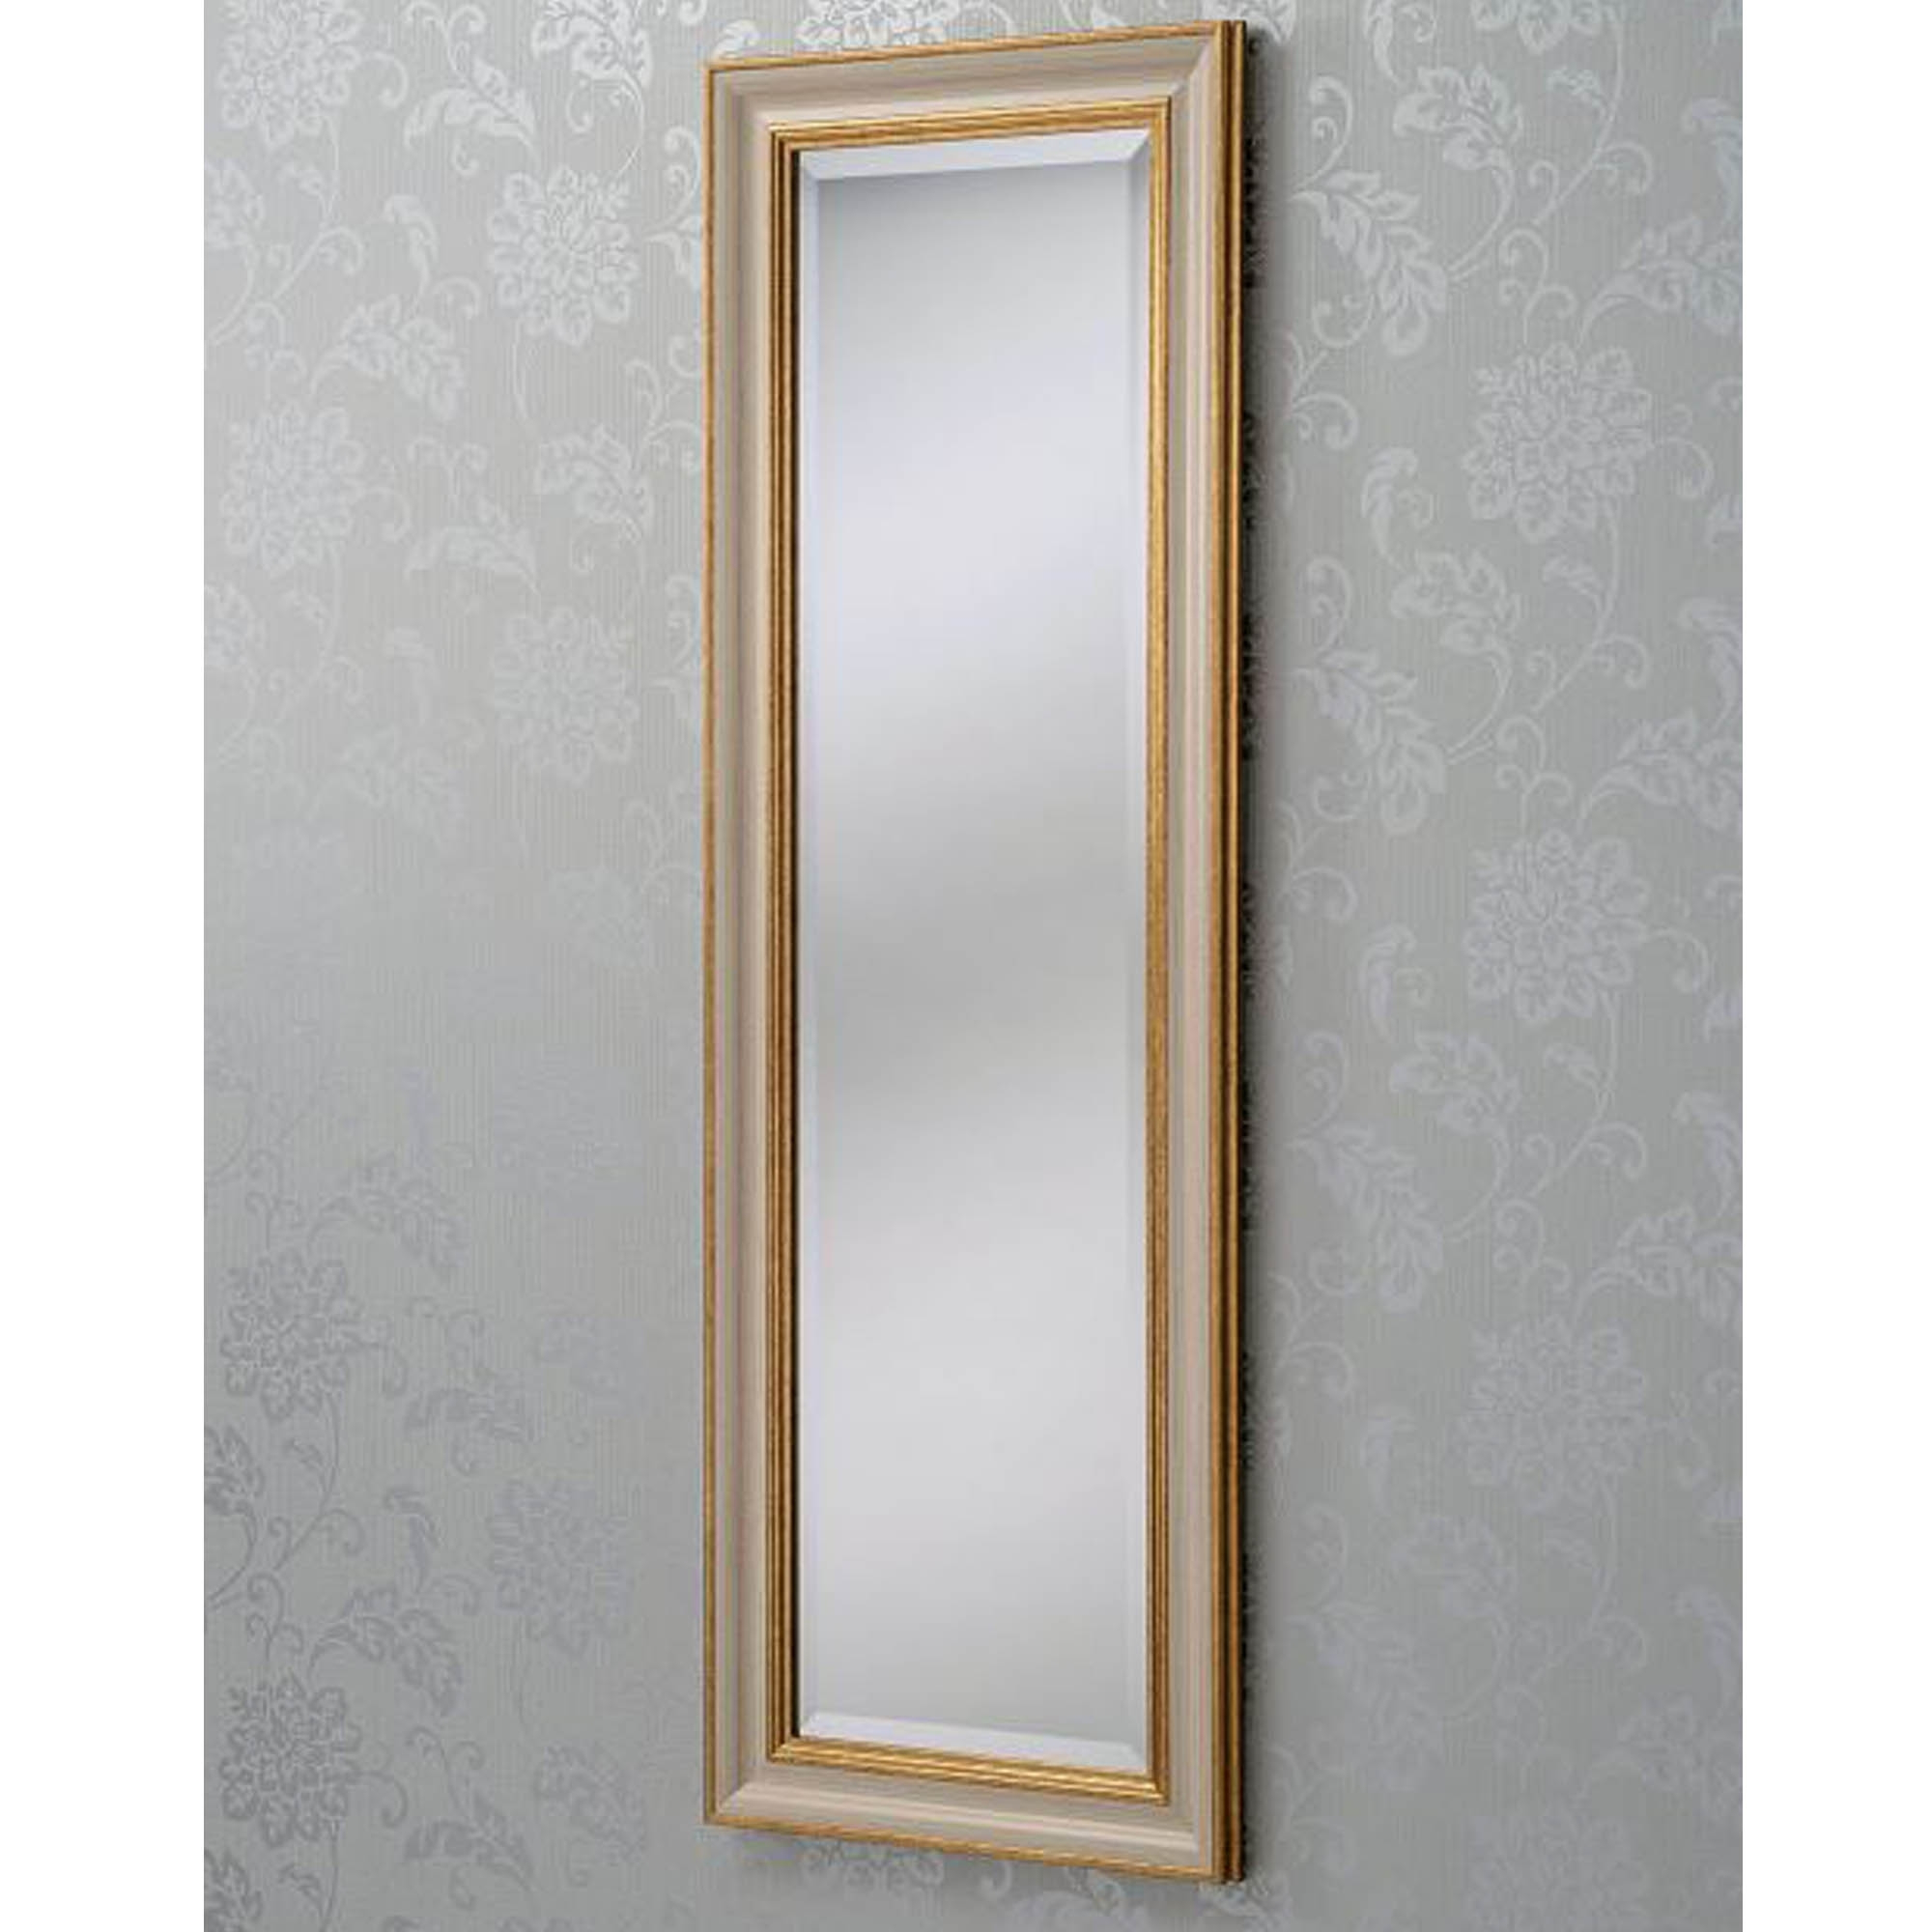 Gold Ivory Rectangular Wall Mirror With Newest Ivory Wall Mirrors (View 5 of 20)